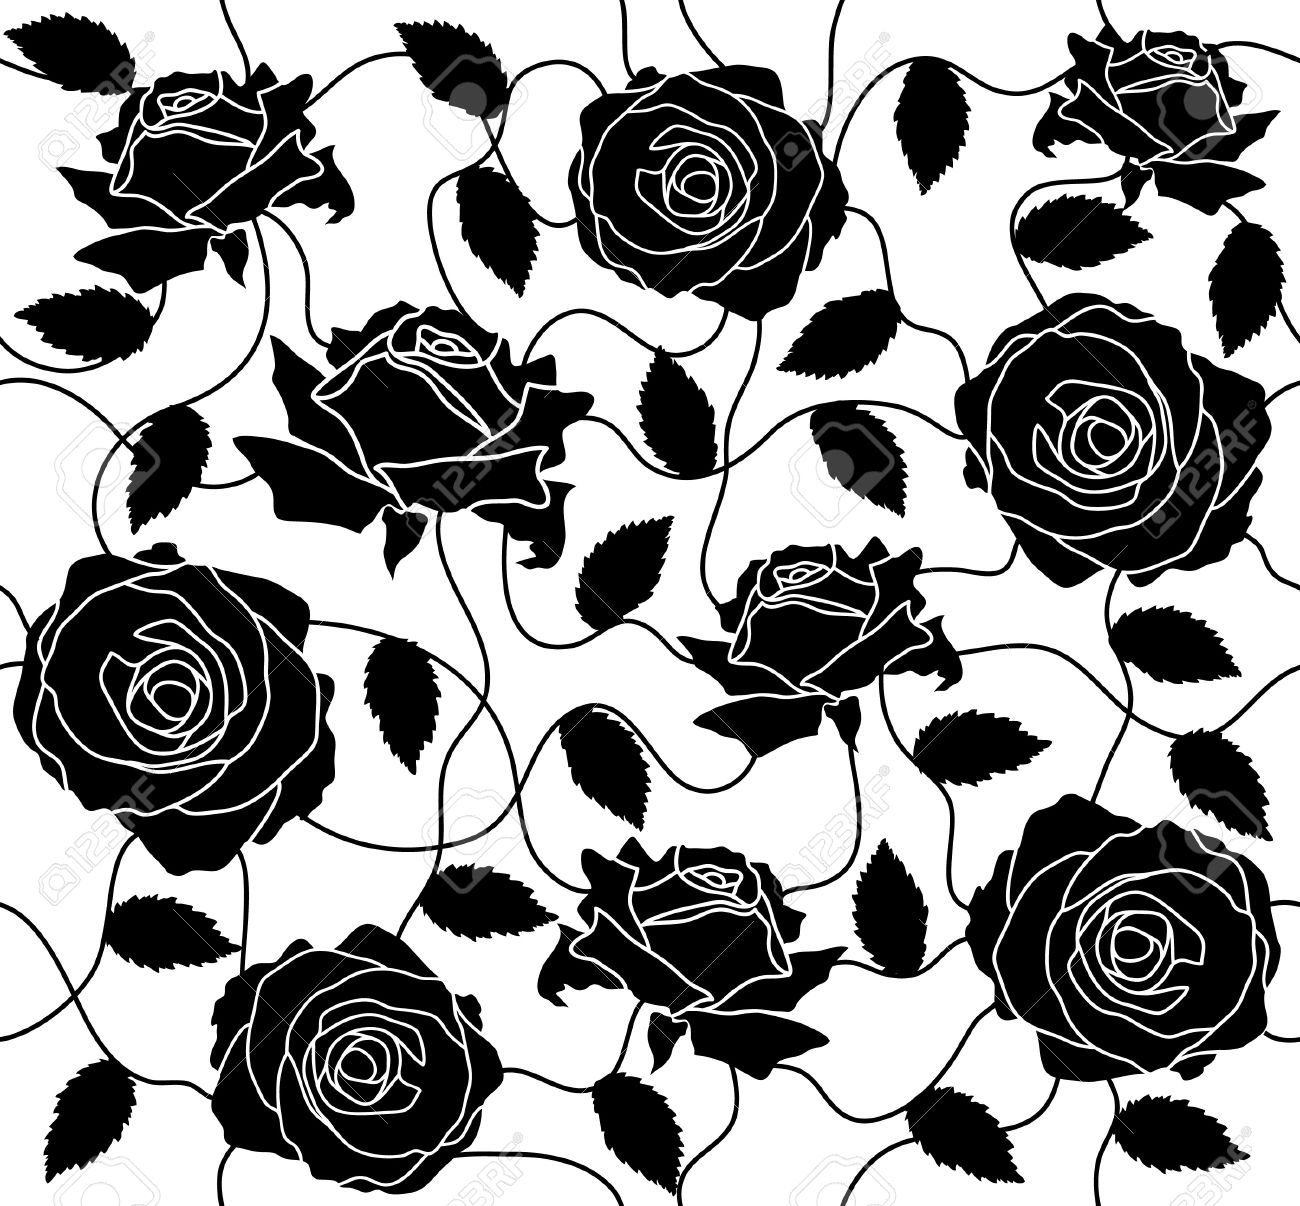 The Seamless Of A Black Roses And Leafs Royalty Free Cliparts